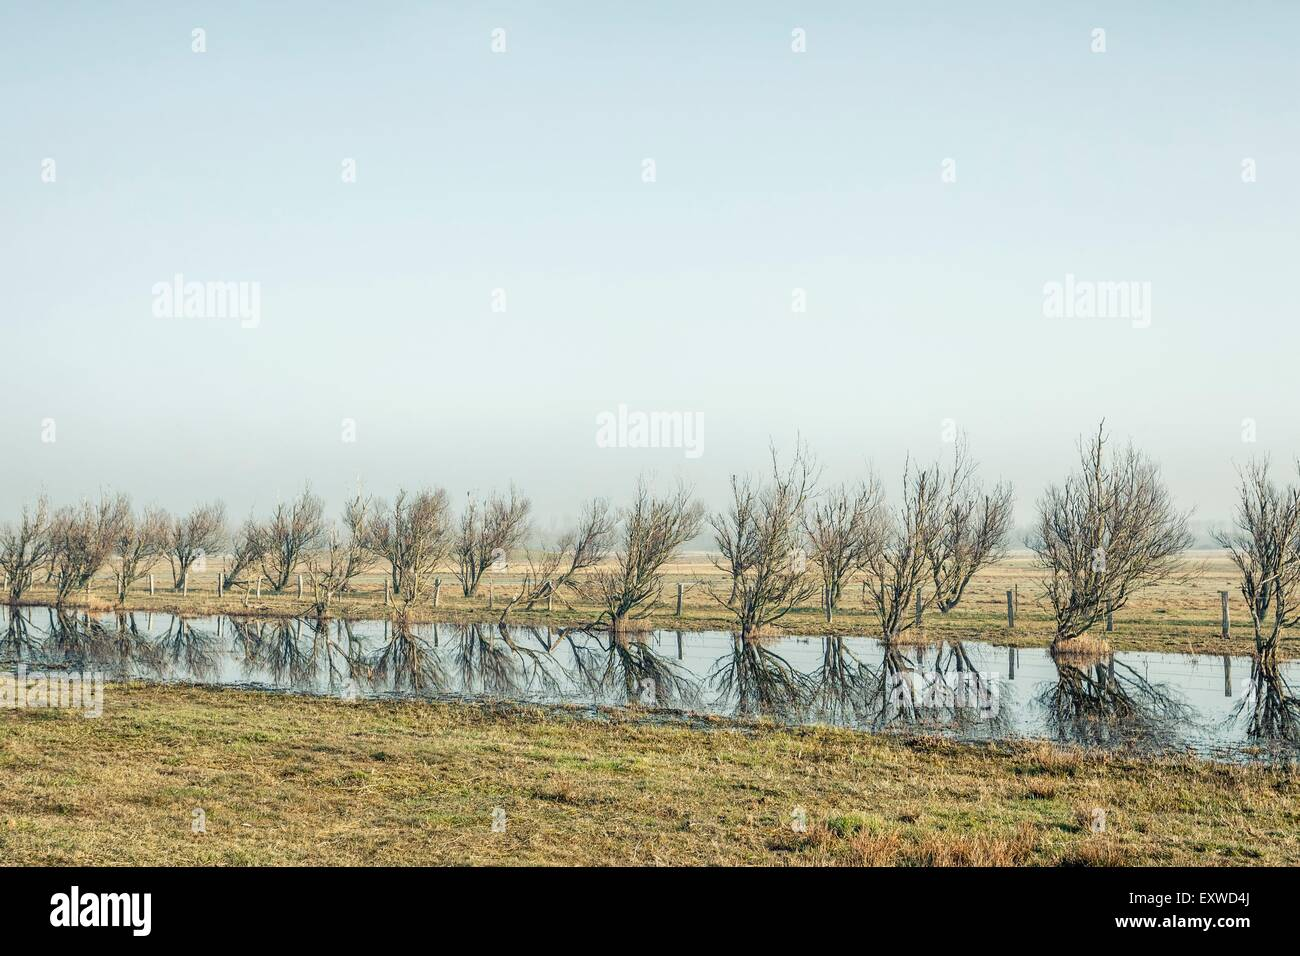 Landscape at Katinger Watt, Schleswig-Holstein, Germany - Stock Image